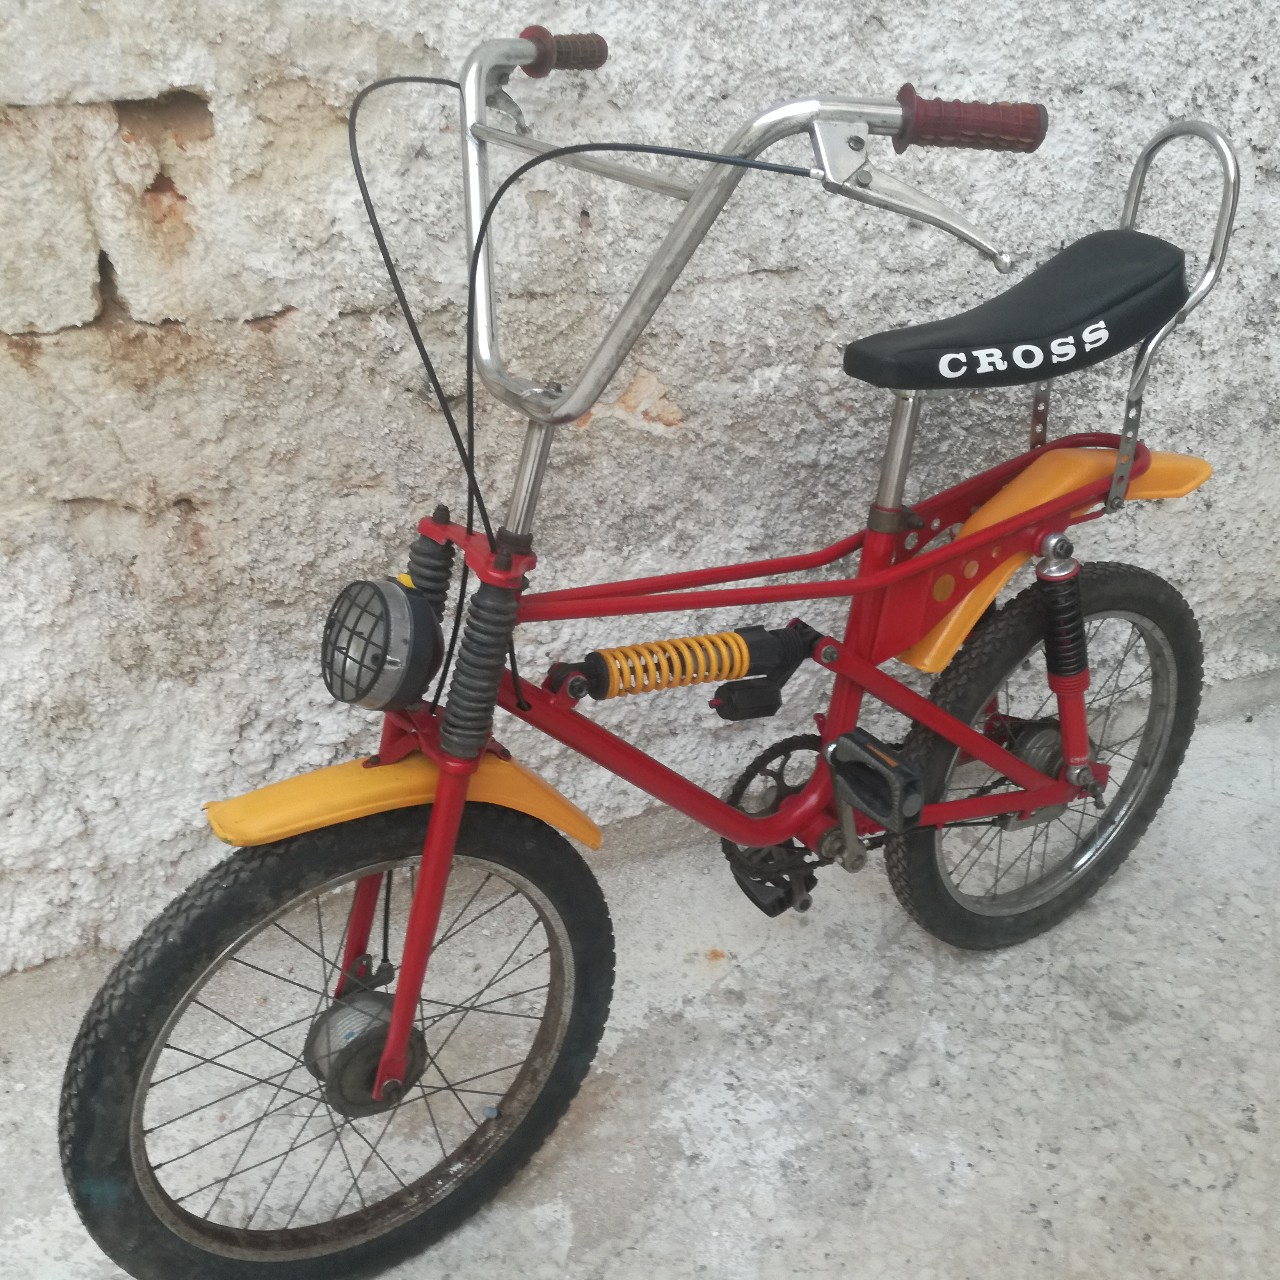 Bici Bike Cross Anni 80 Vintage Epoca Retrò Depop